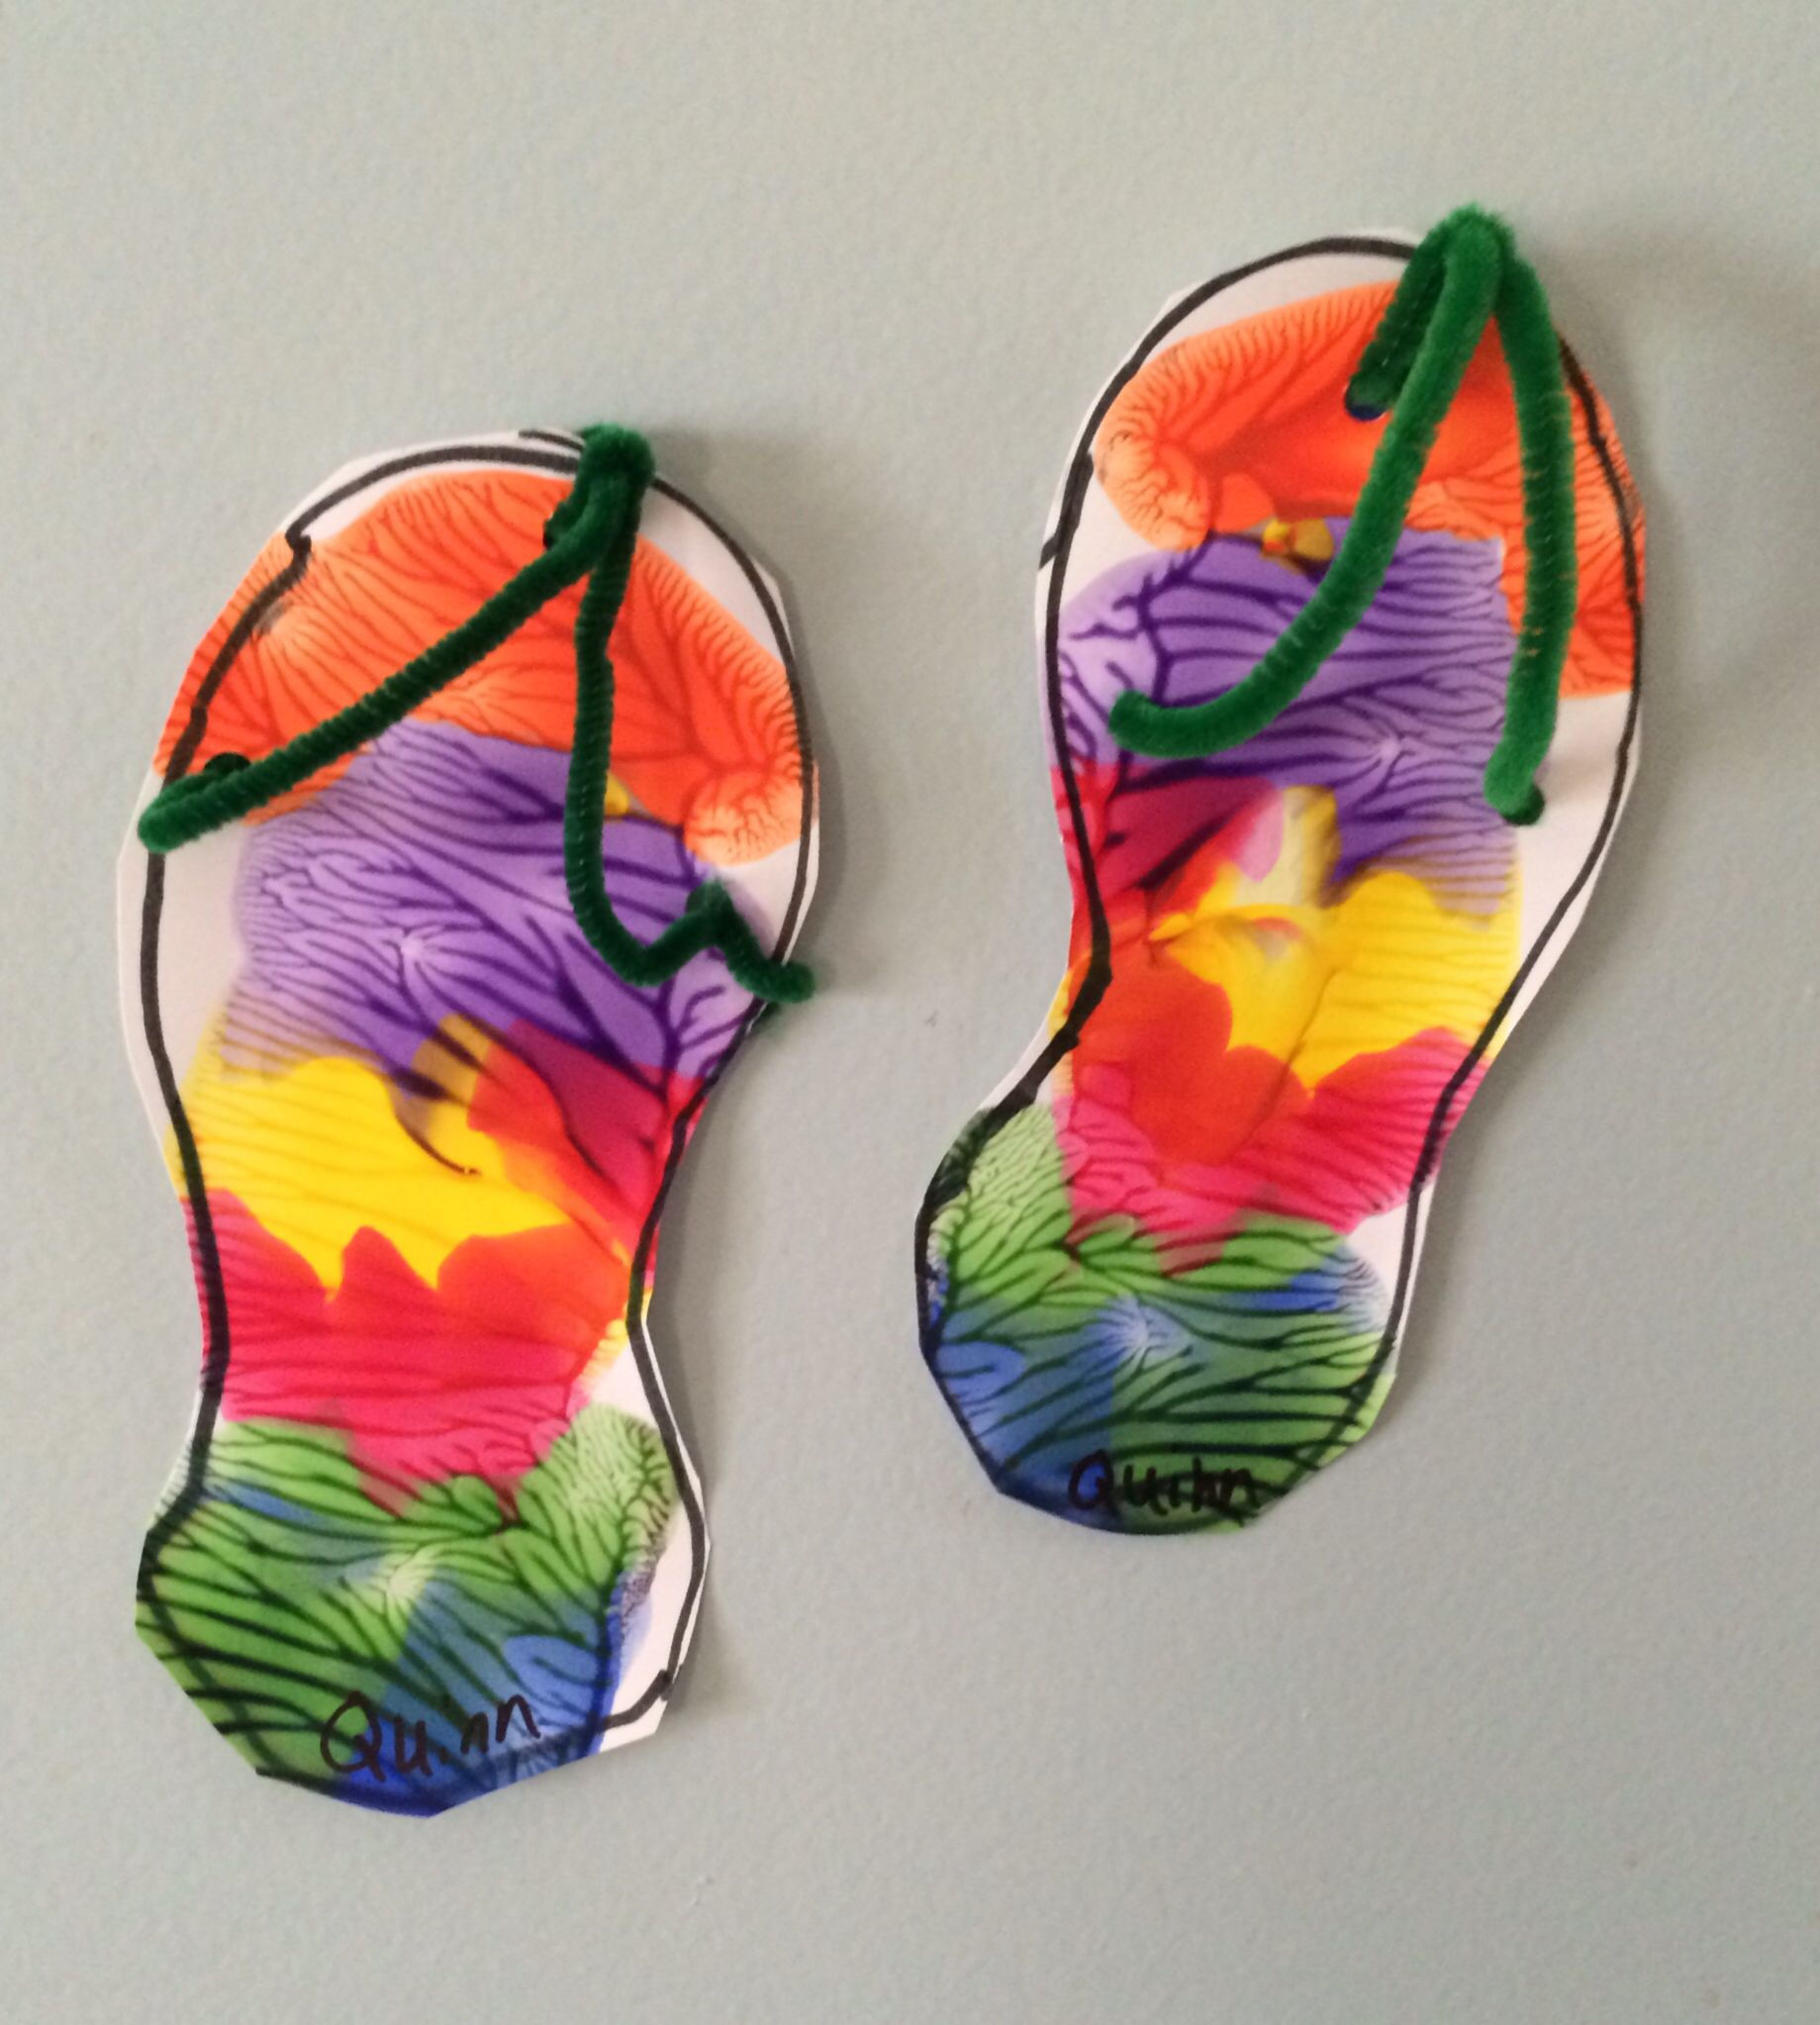 9fb42c020915 Flip flop craft. Trace both feet on one paper. Have child put blobs of  paint around one foot. Fold in half